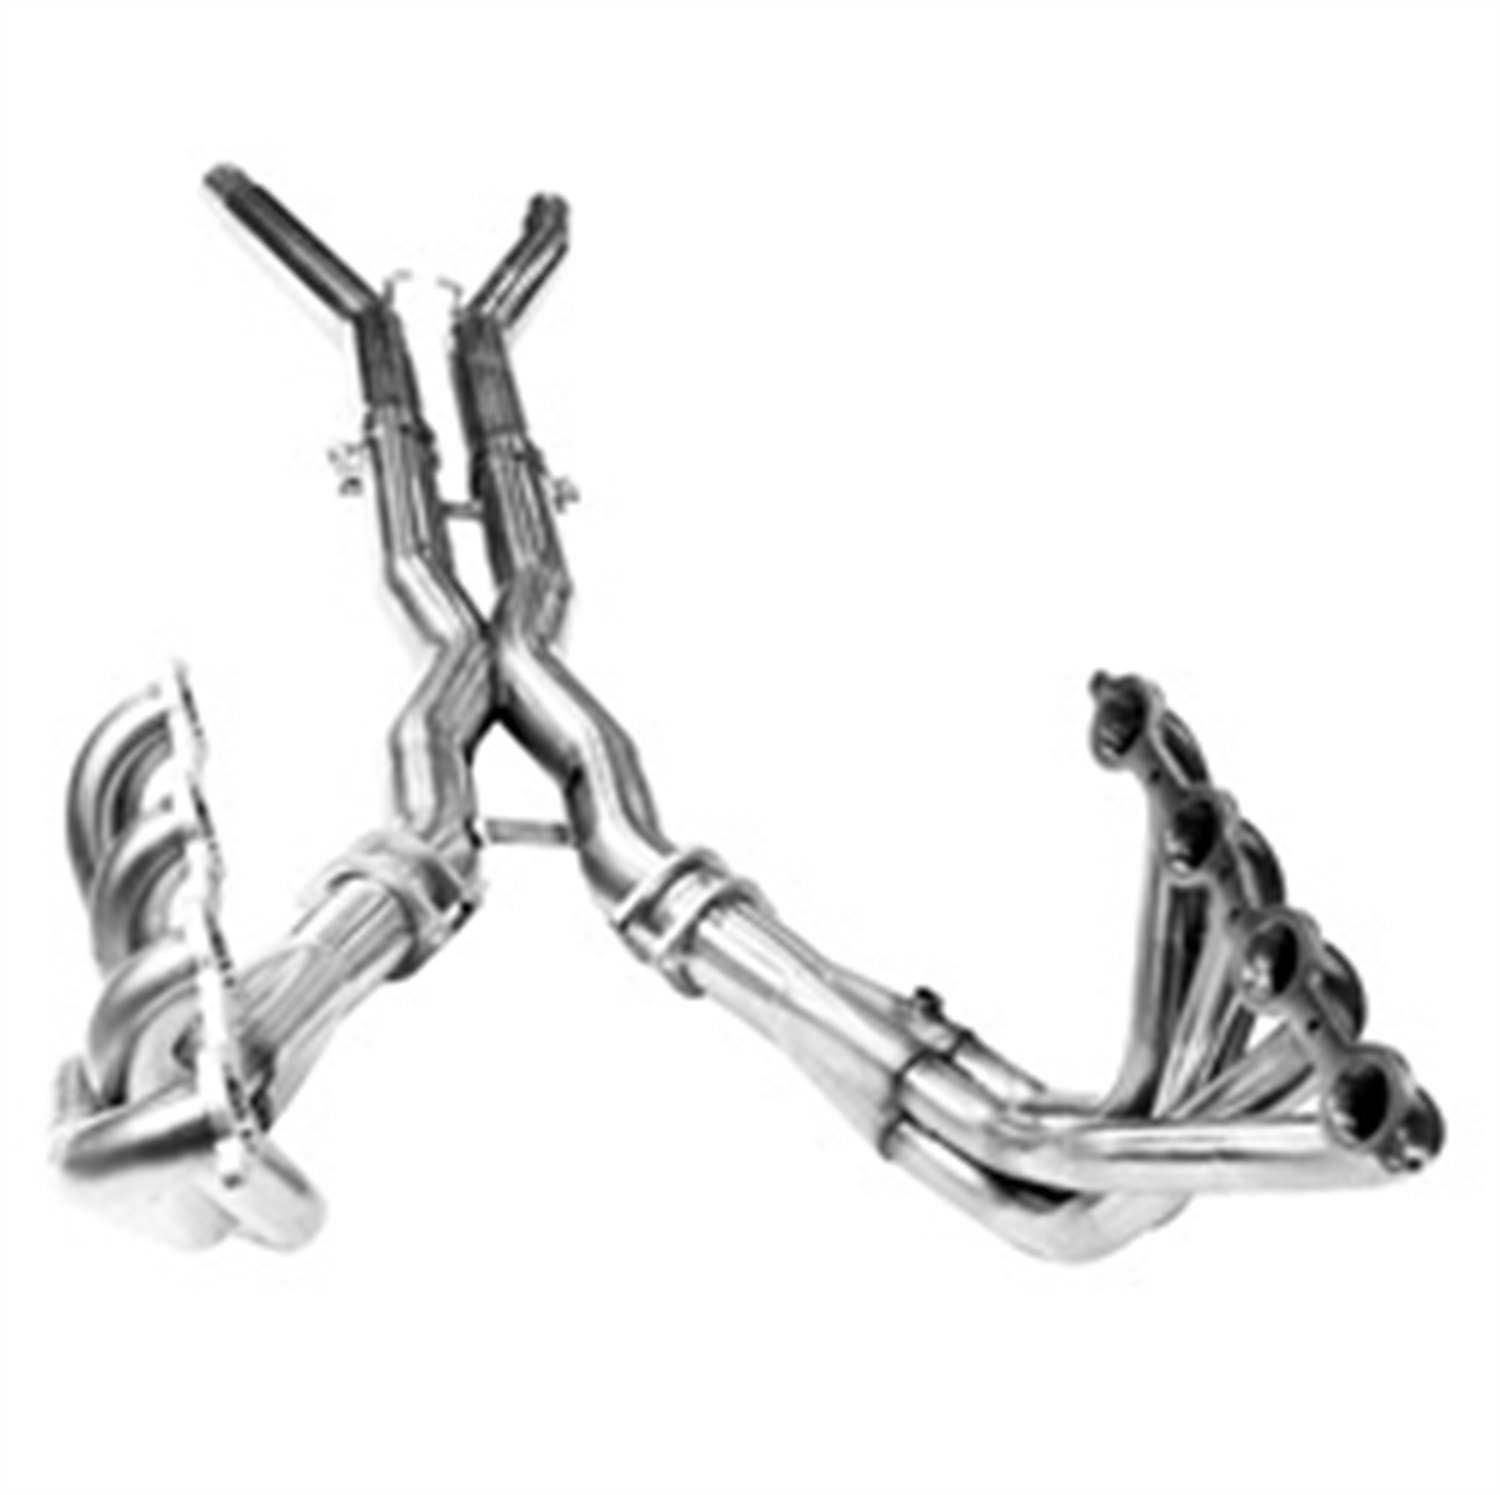 Kooks 21602200 1-3//4 x 3 Stainless Steel Long Tube Header Non-CARB Compliant